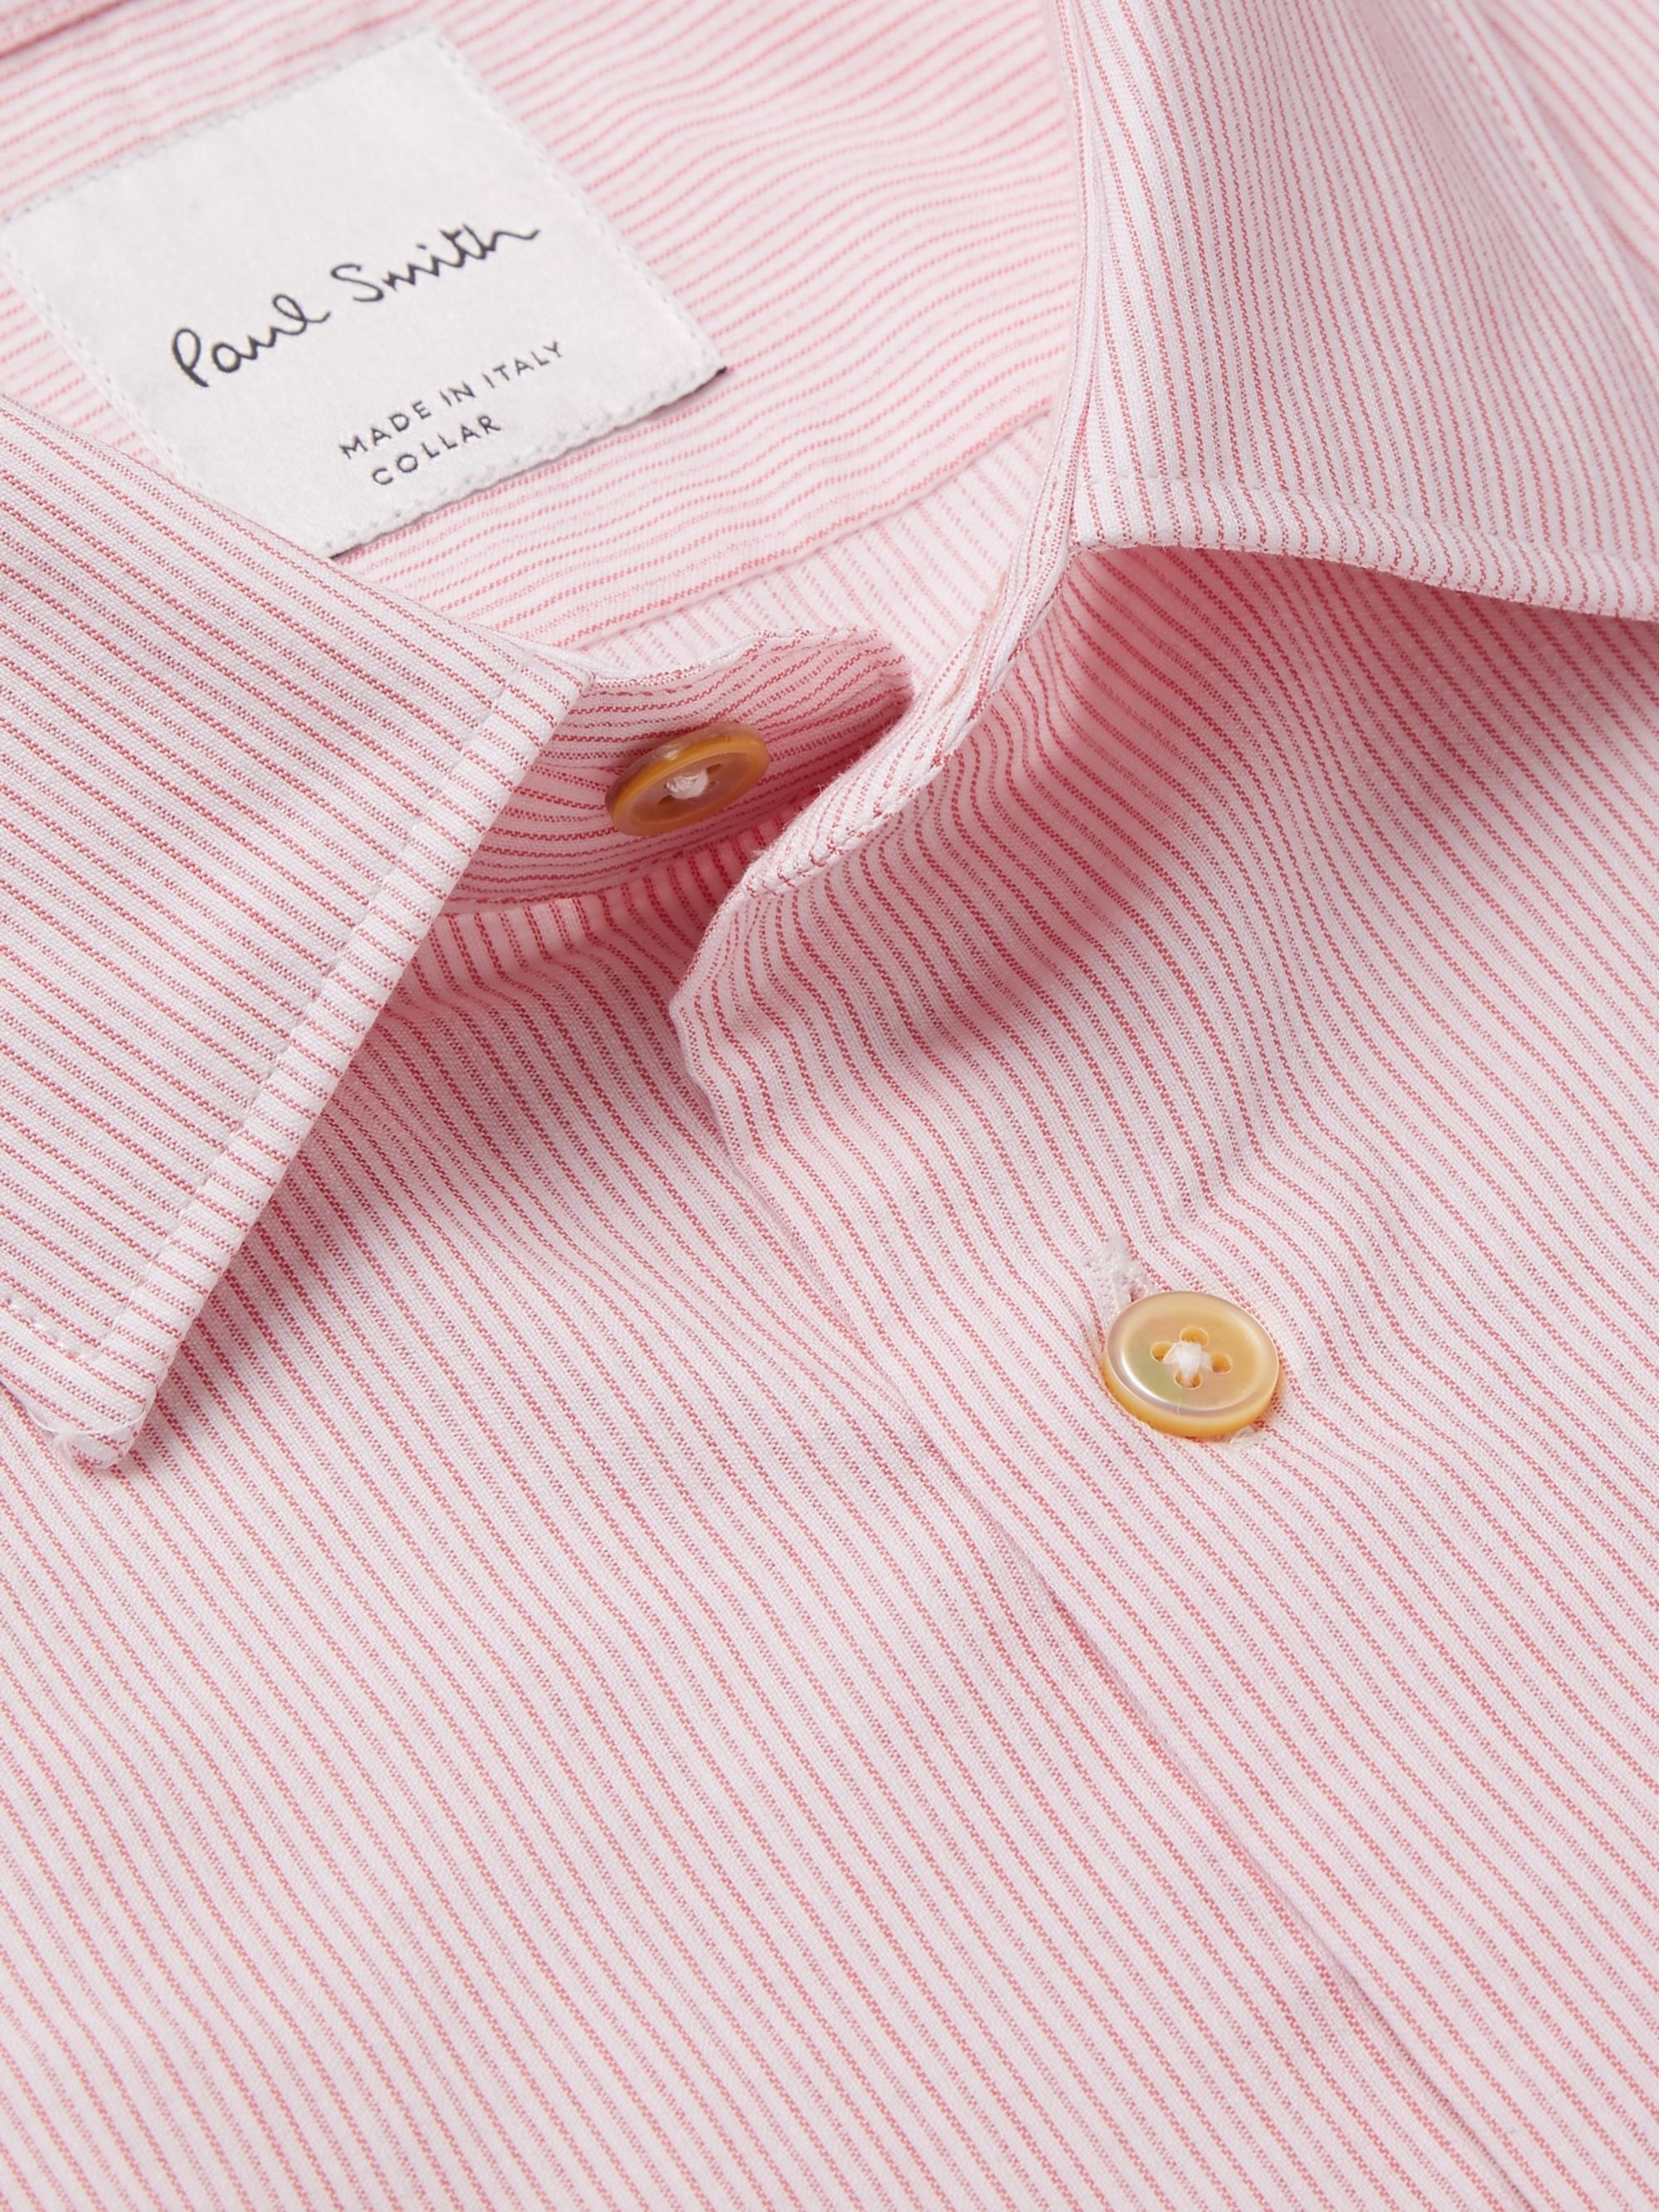 Paul Smith Soho Slim-Fit Striped Cotton Shirt